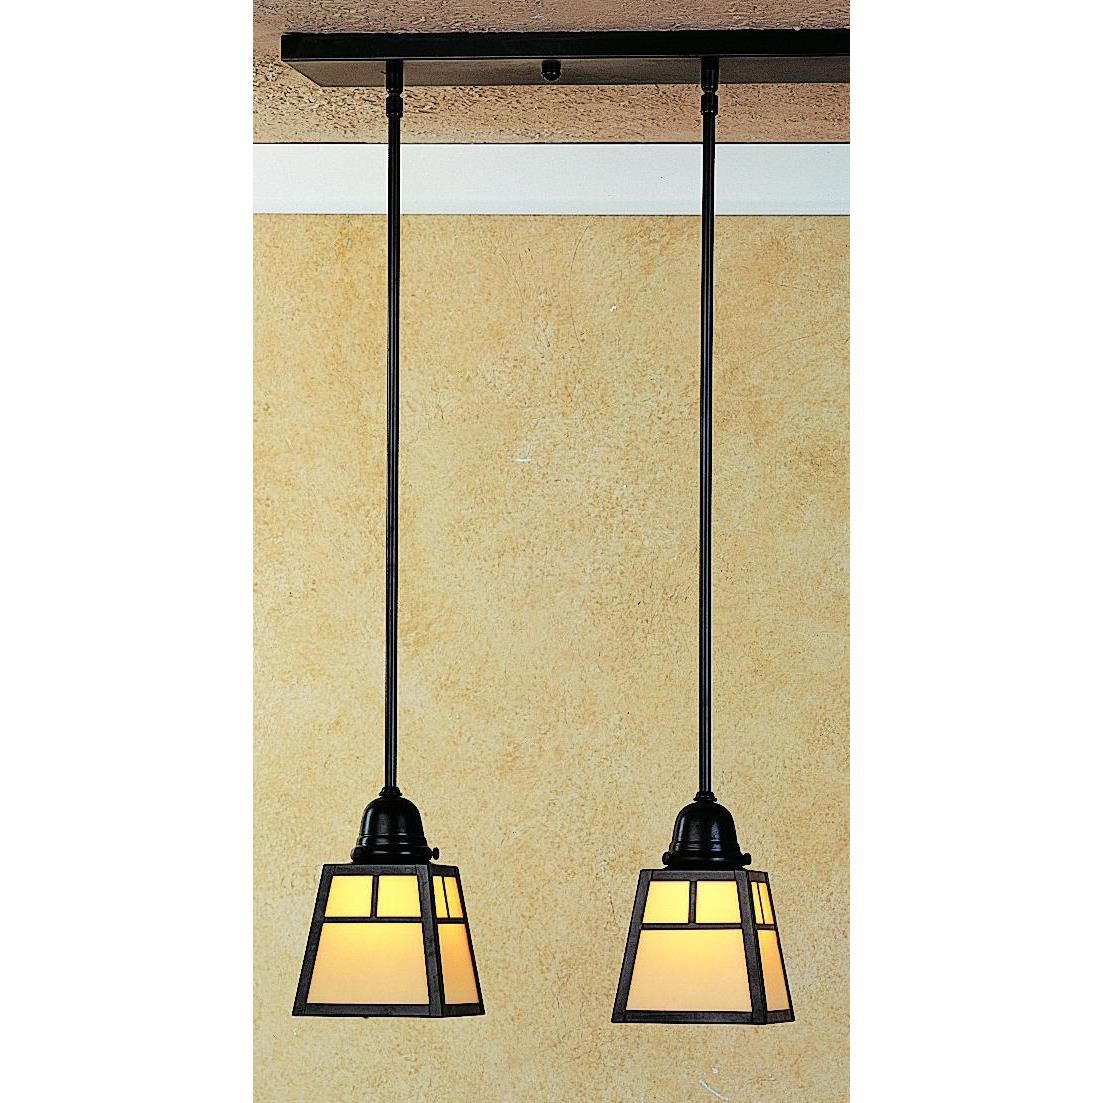 Arroyo_Craftsman_ALine_15_Inch_2_Light_Linear_Suspension_Light_ALine__AICH2TFAB__CraftsmanMission_Linear_Suspension_Light